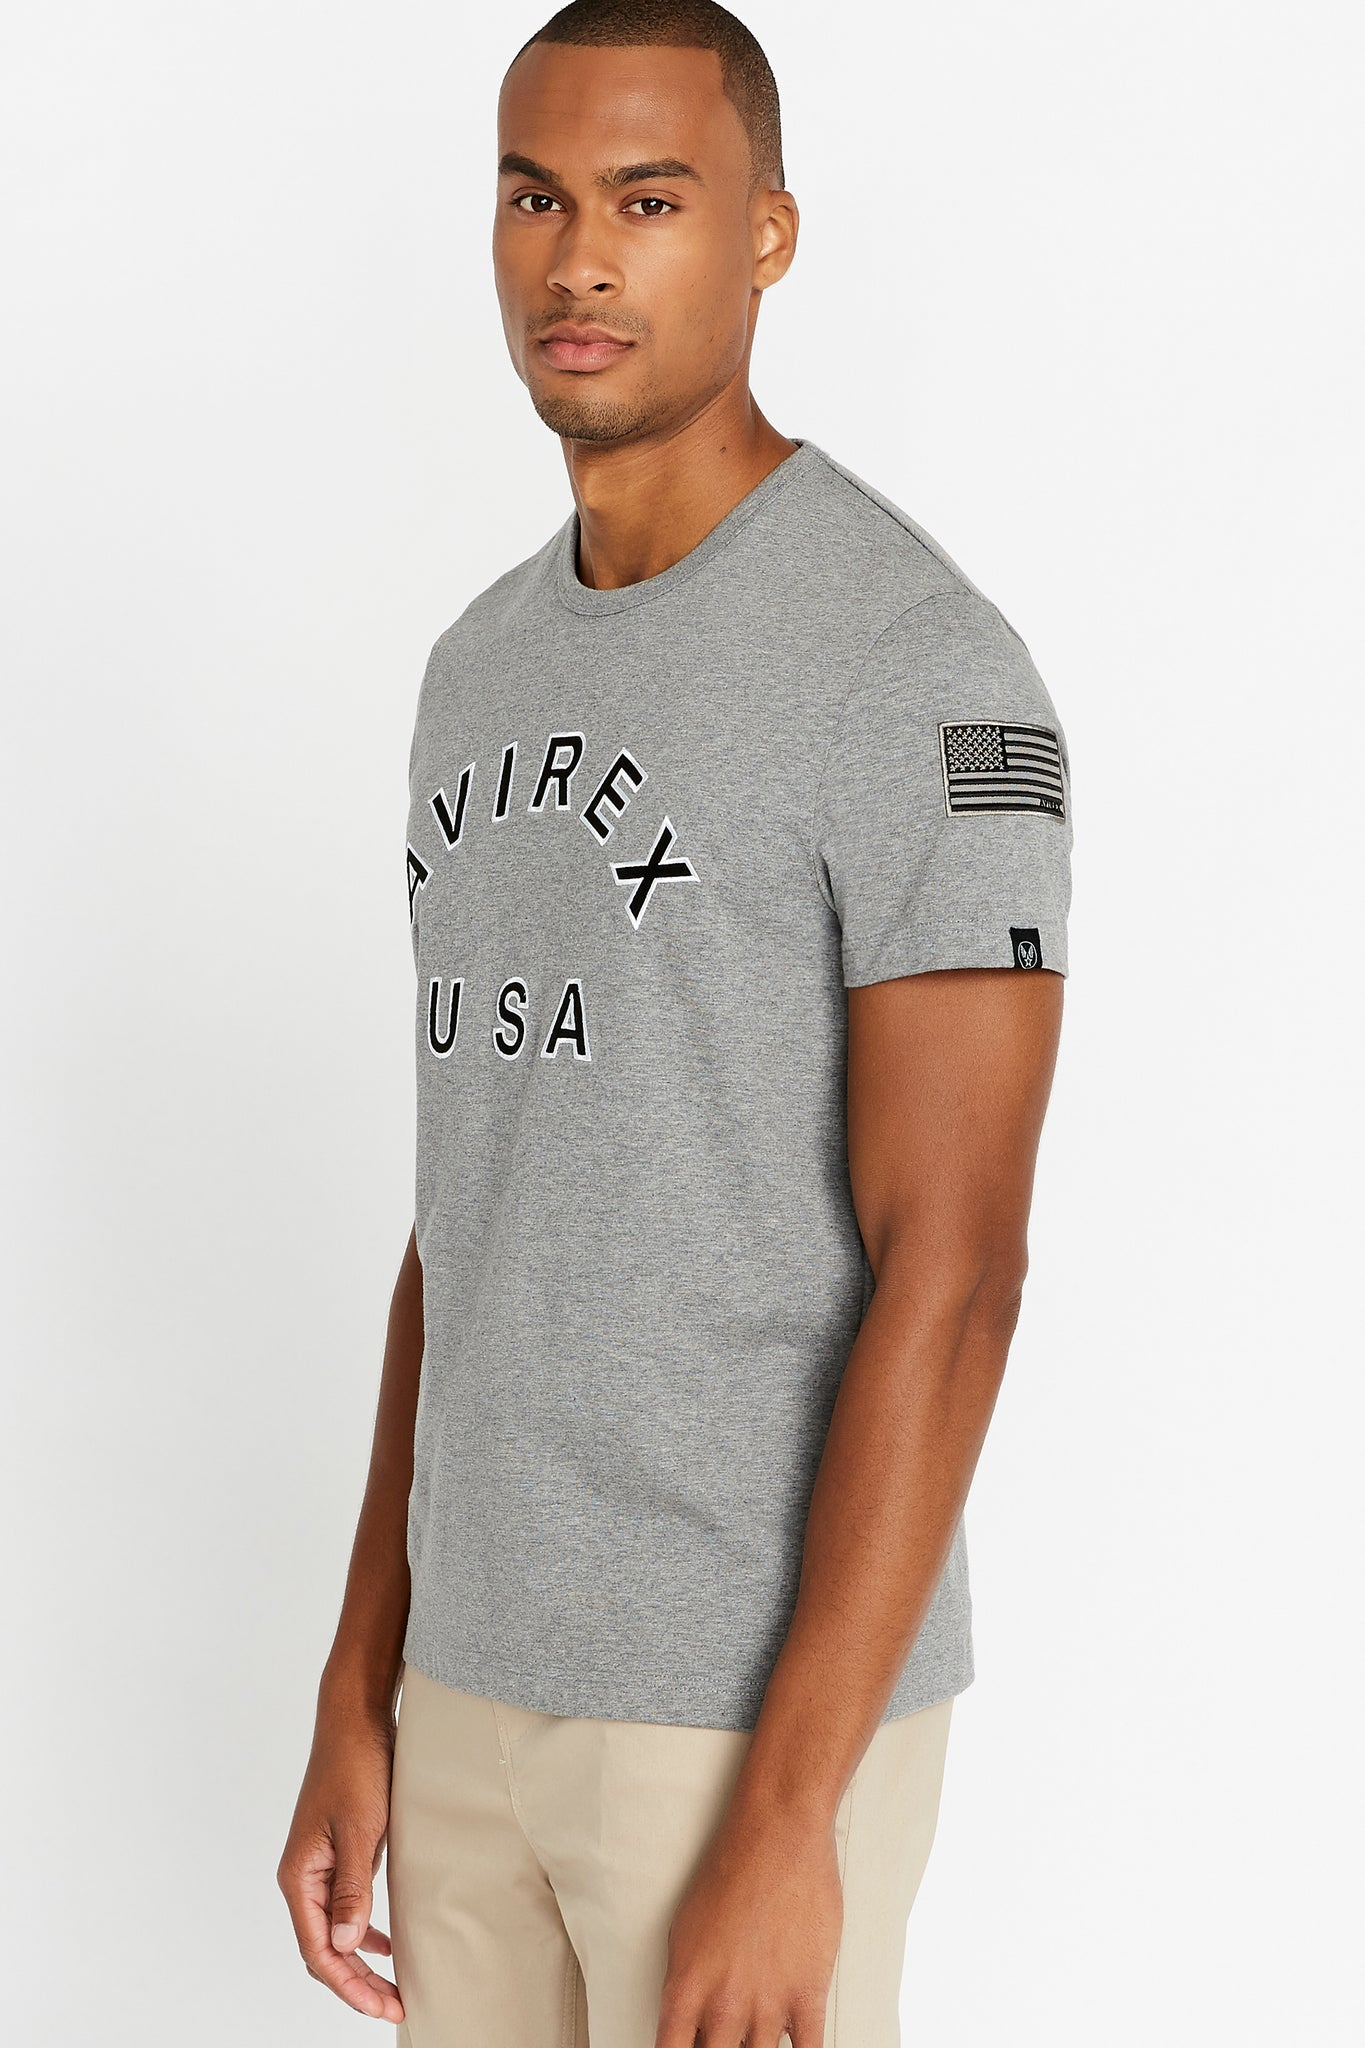 Side view of men wearing a light grey short sleeve crew T-shirt with bold logo across the front saying Avirex USA and a patch on left sleeve